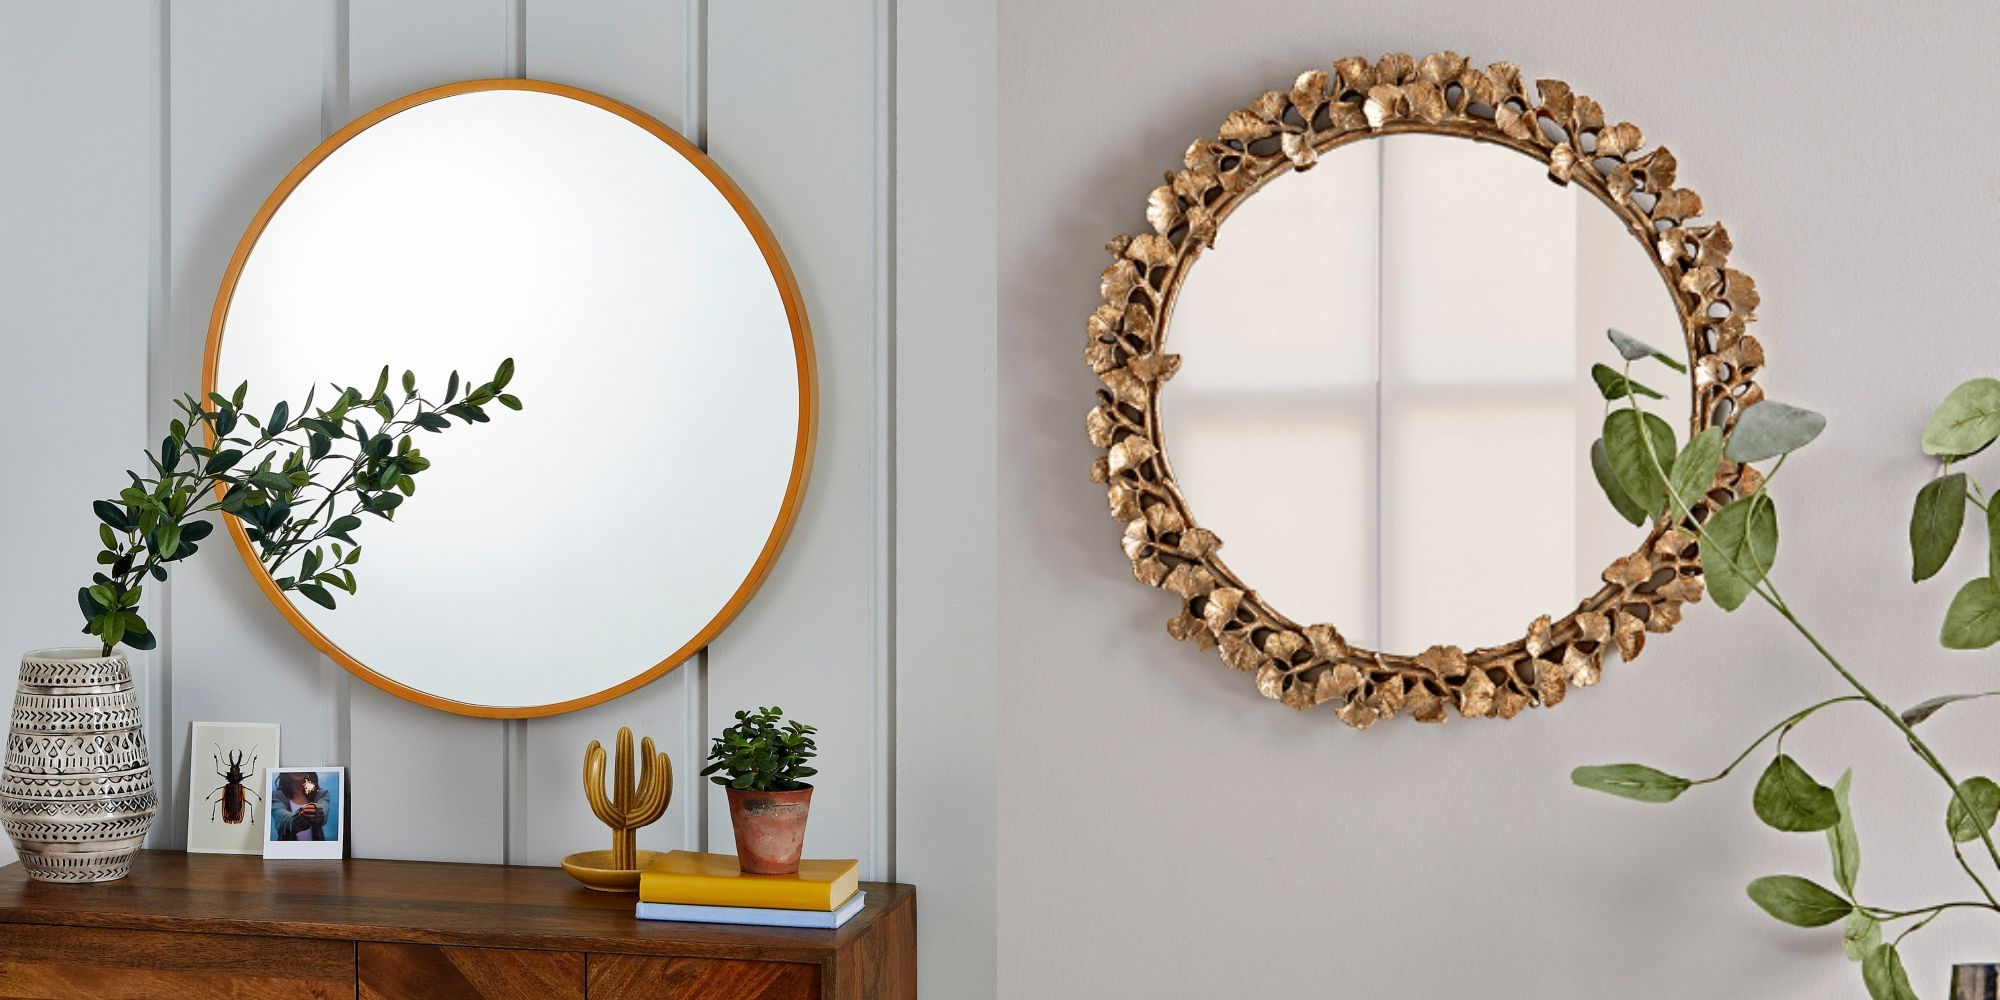 Small Round Wall Mirrors Inside Latest 7 Statement Round Wall Mirrors To Buy For Your Home (View 15 of 20)